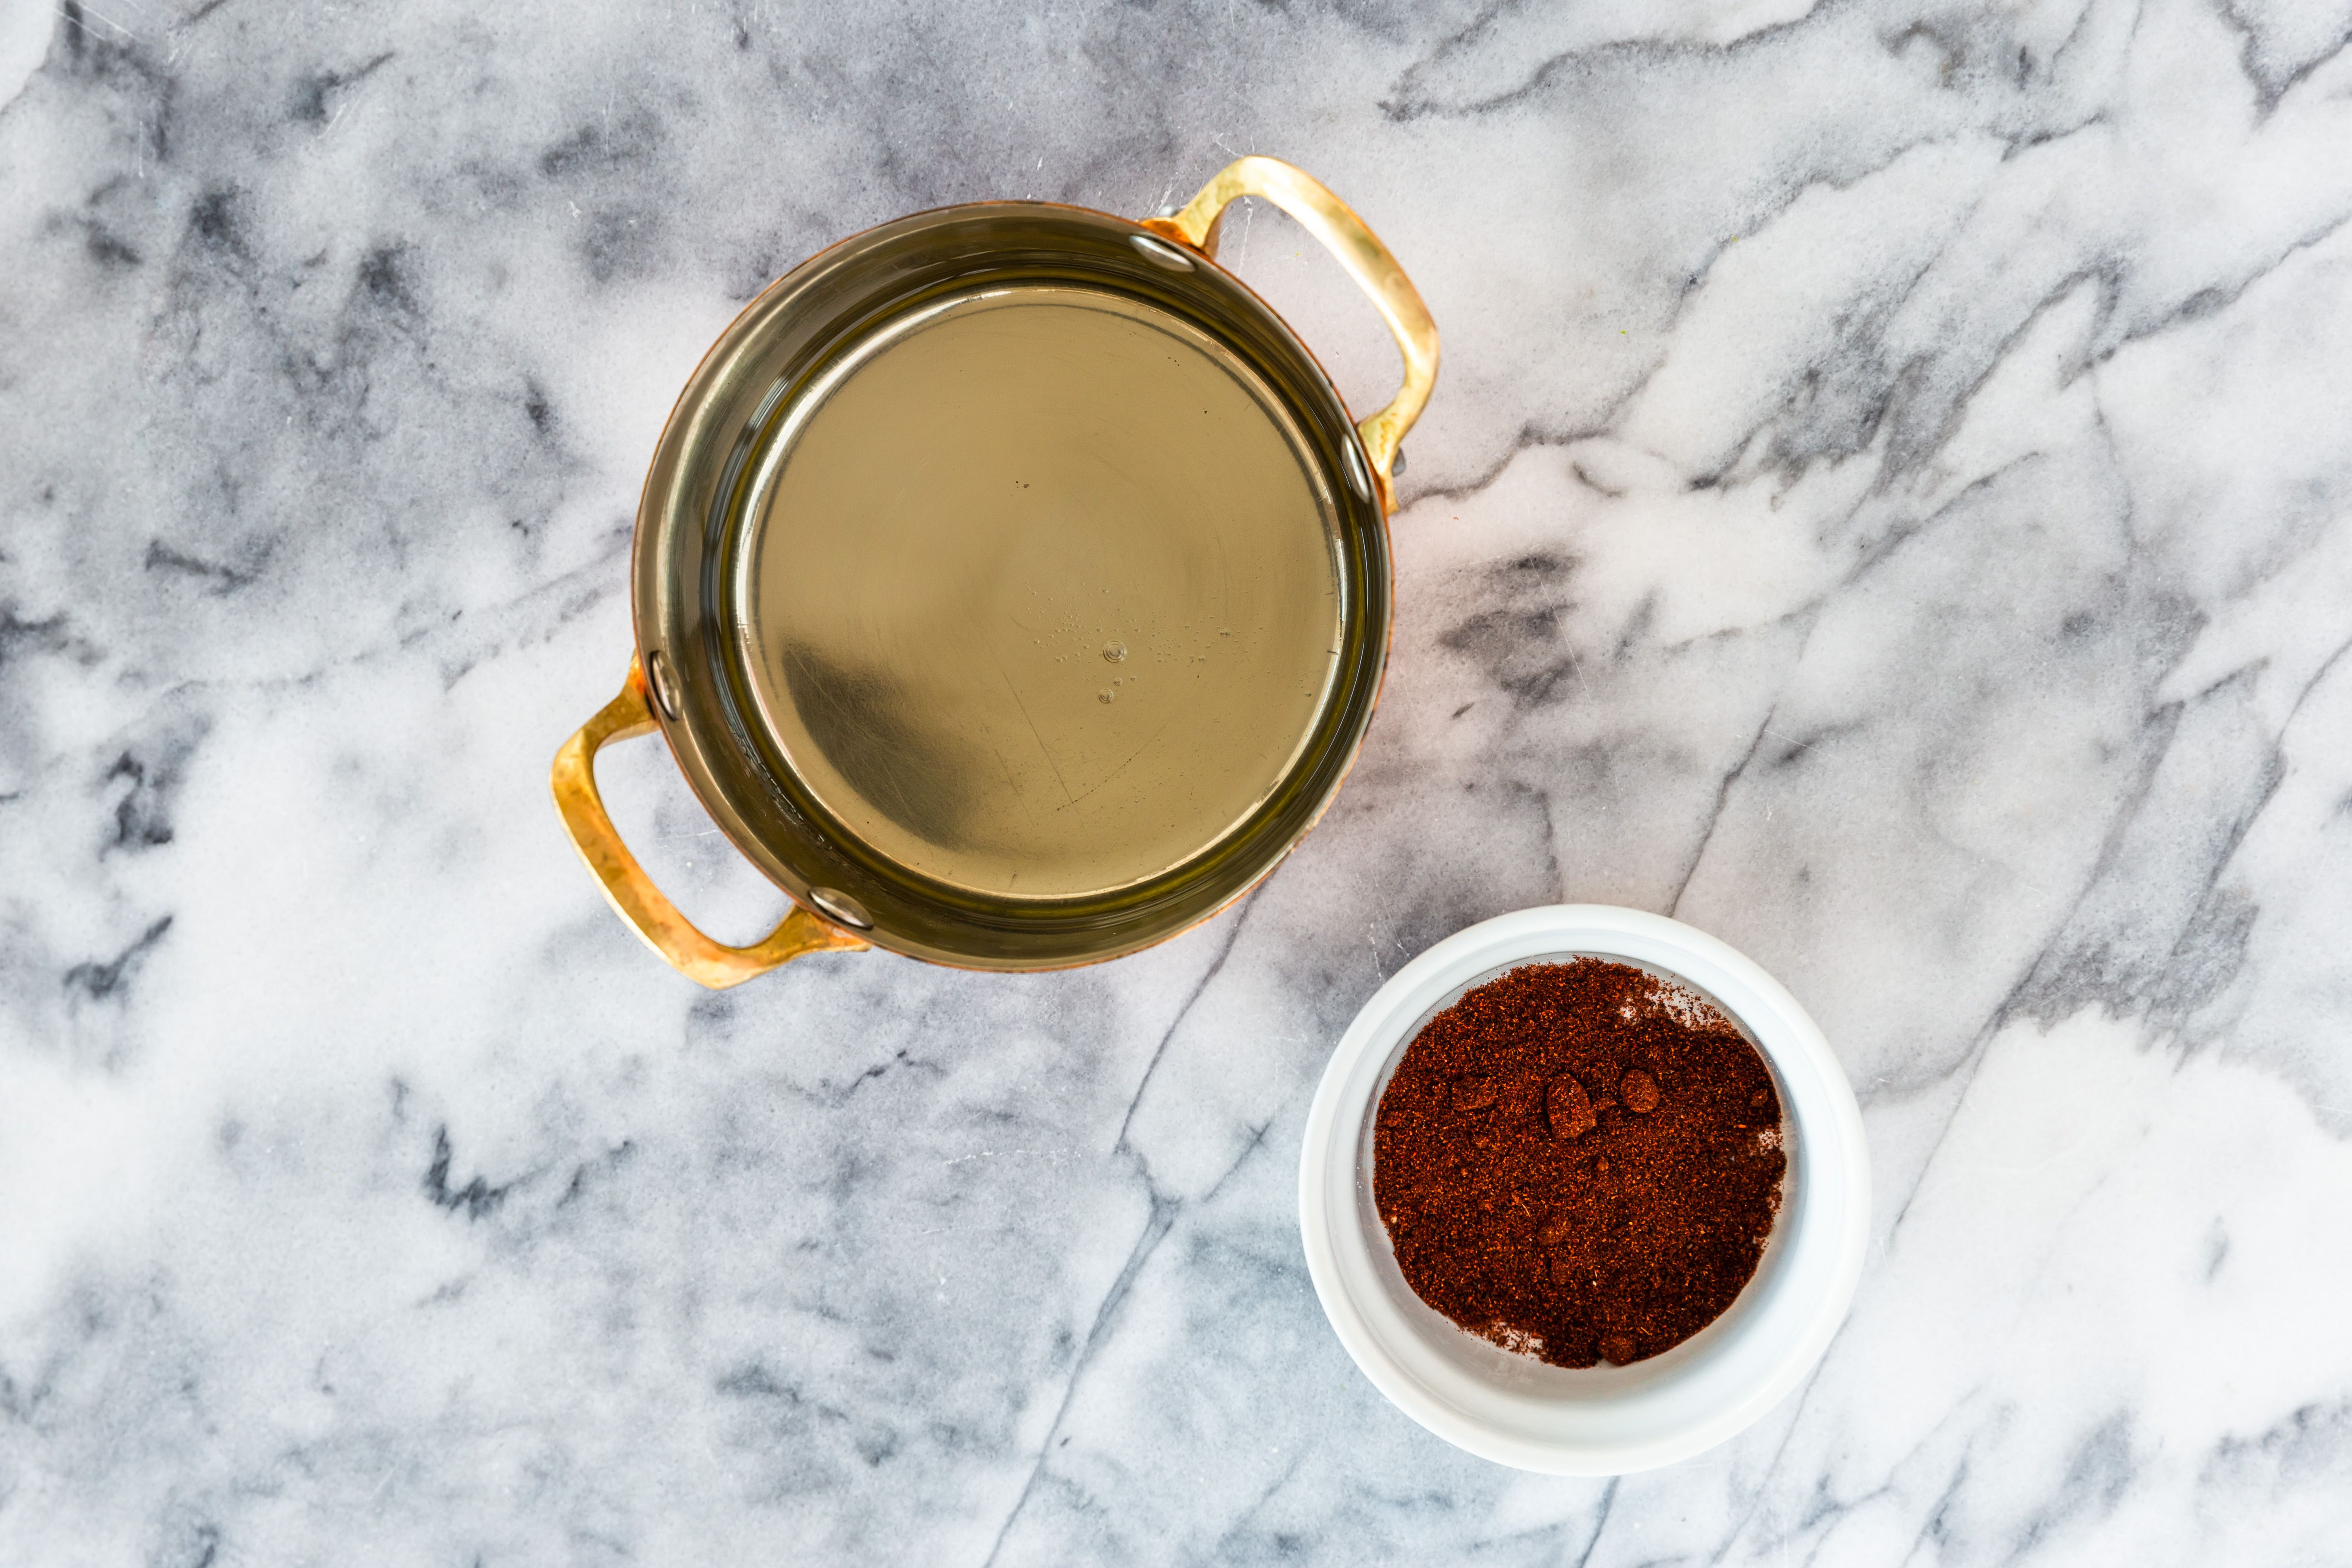 Cooking oil in a pan and a cup of chili powder